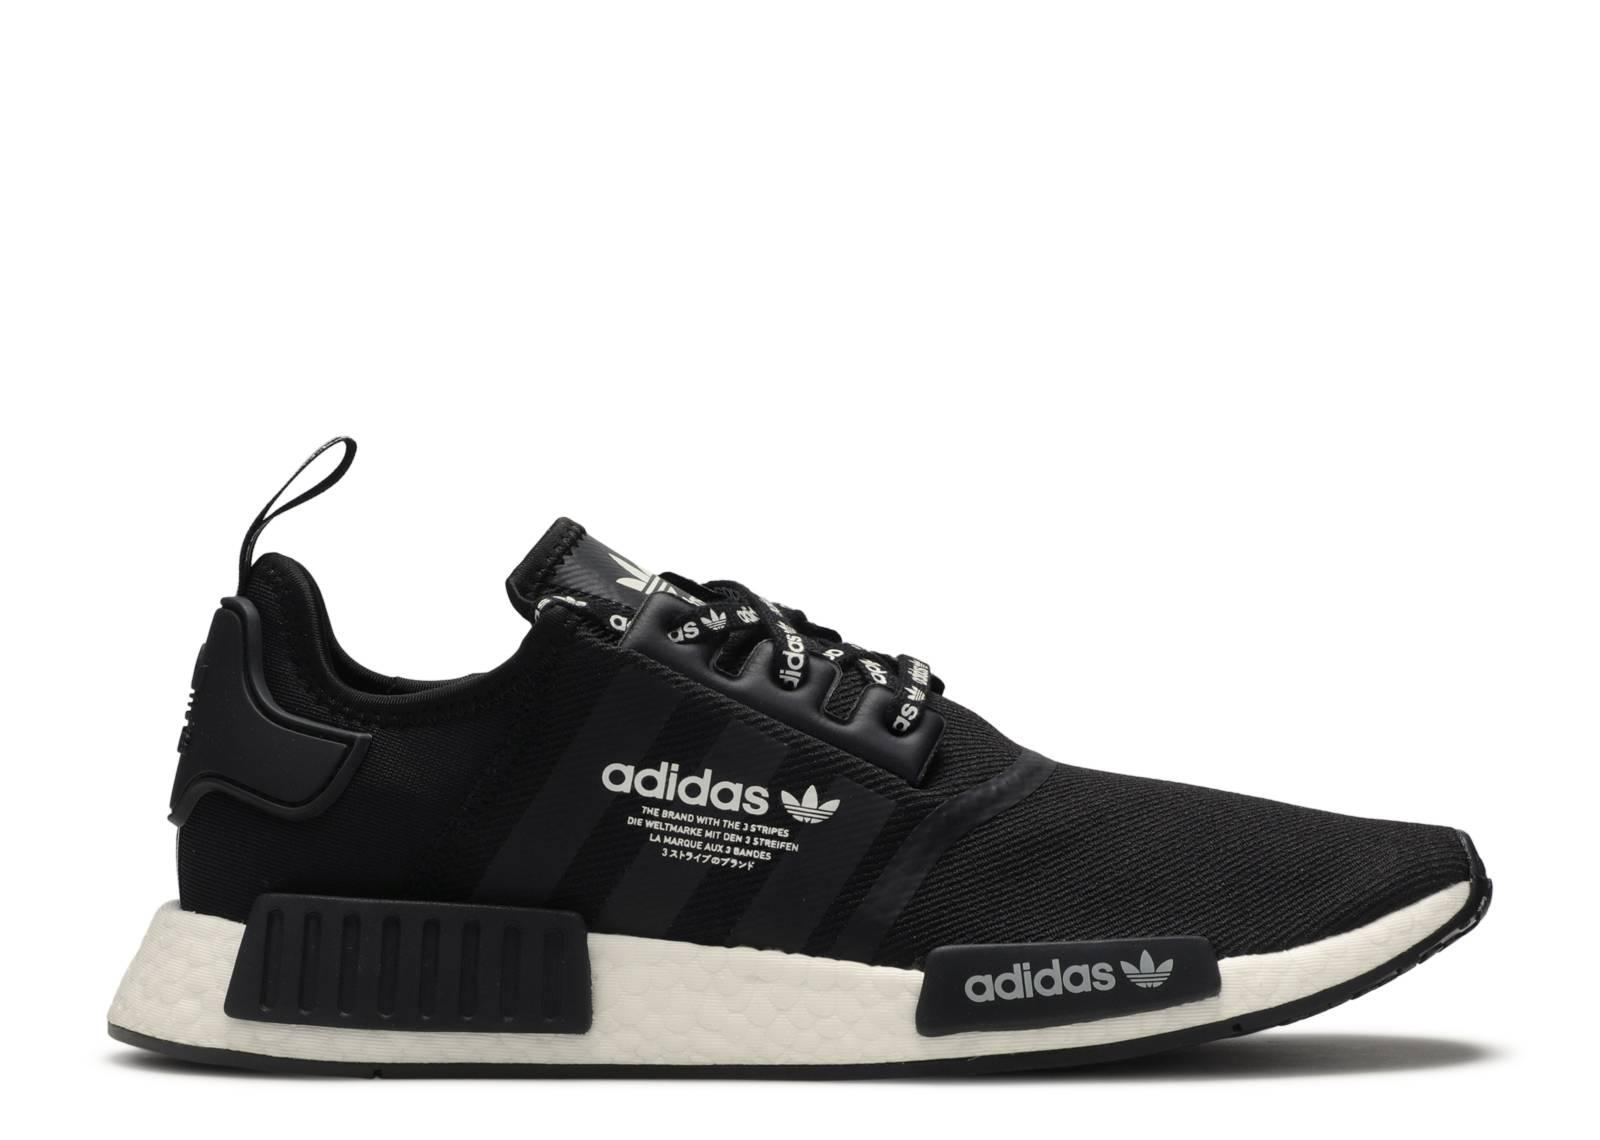 adidas Rubber Nmd R1 Running Shoes in